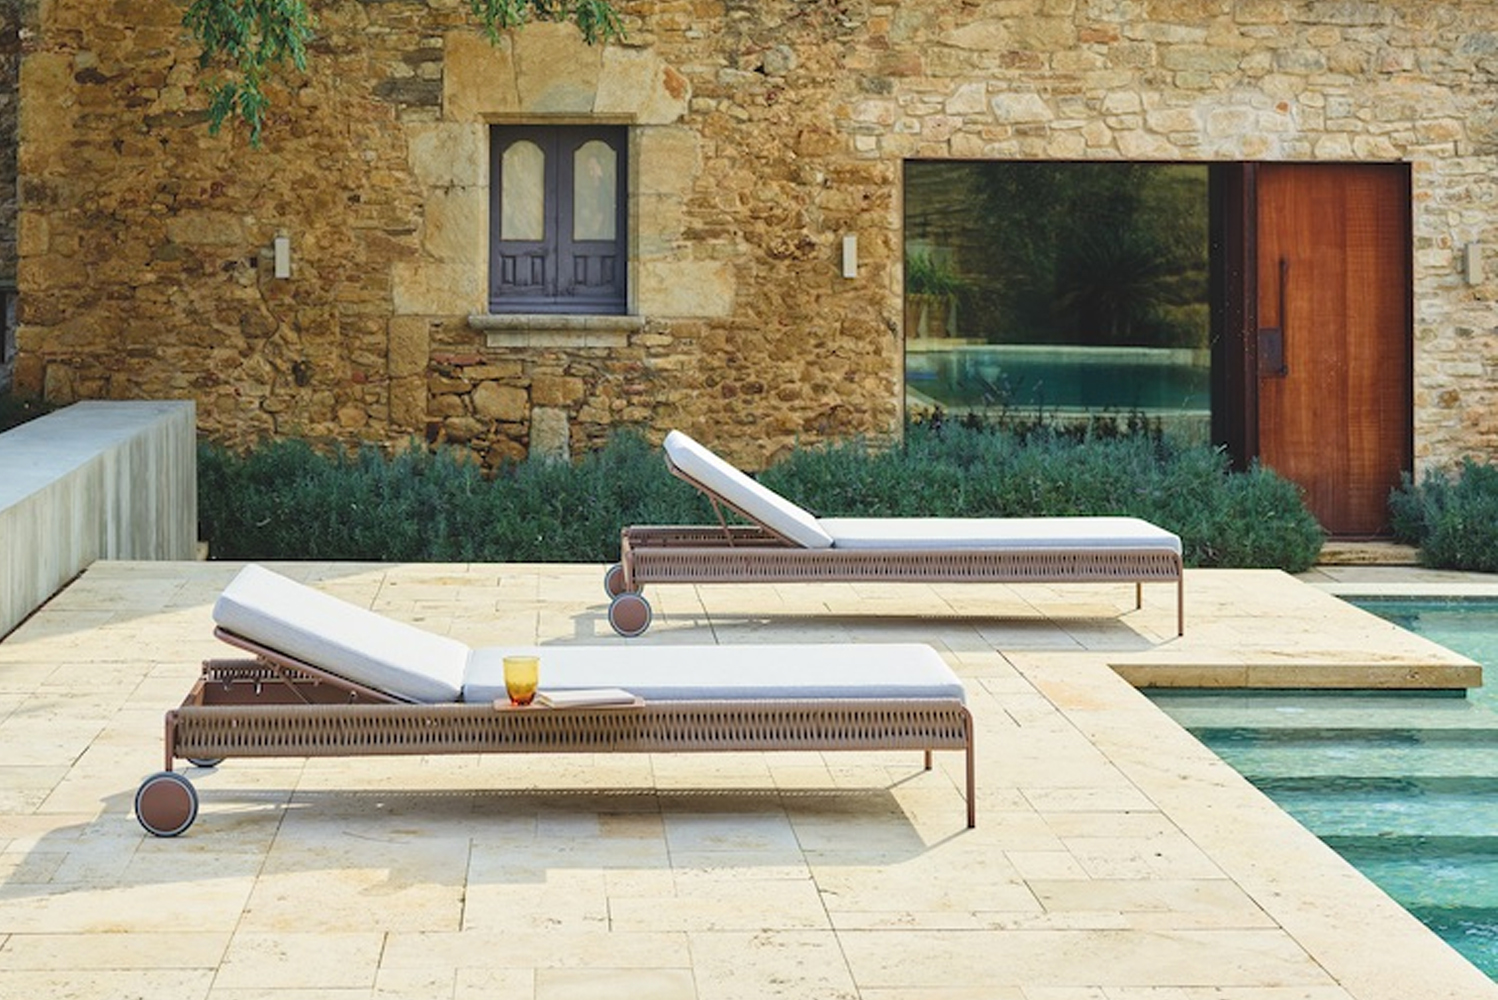 The collection is by designer Vincent Martinez for Spain-based outdoor furniture brand Point.